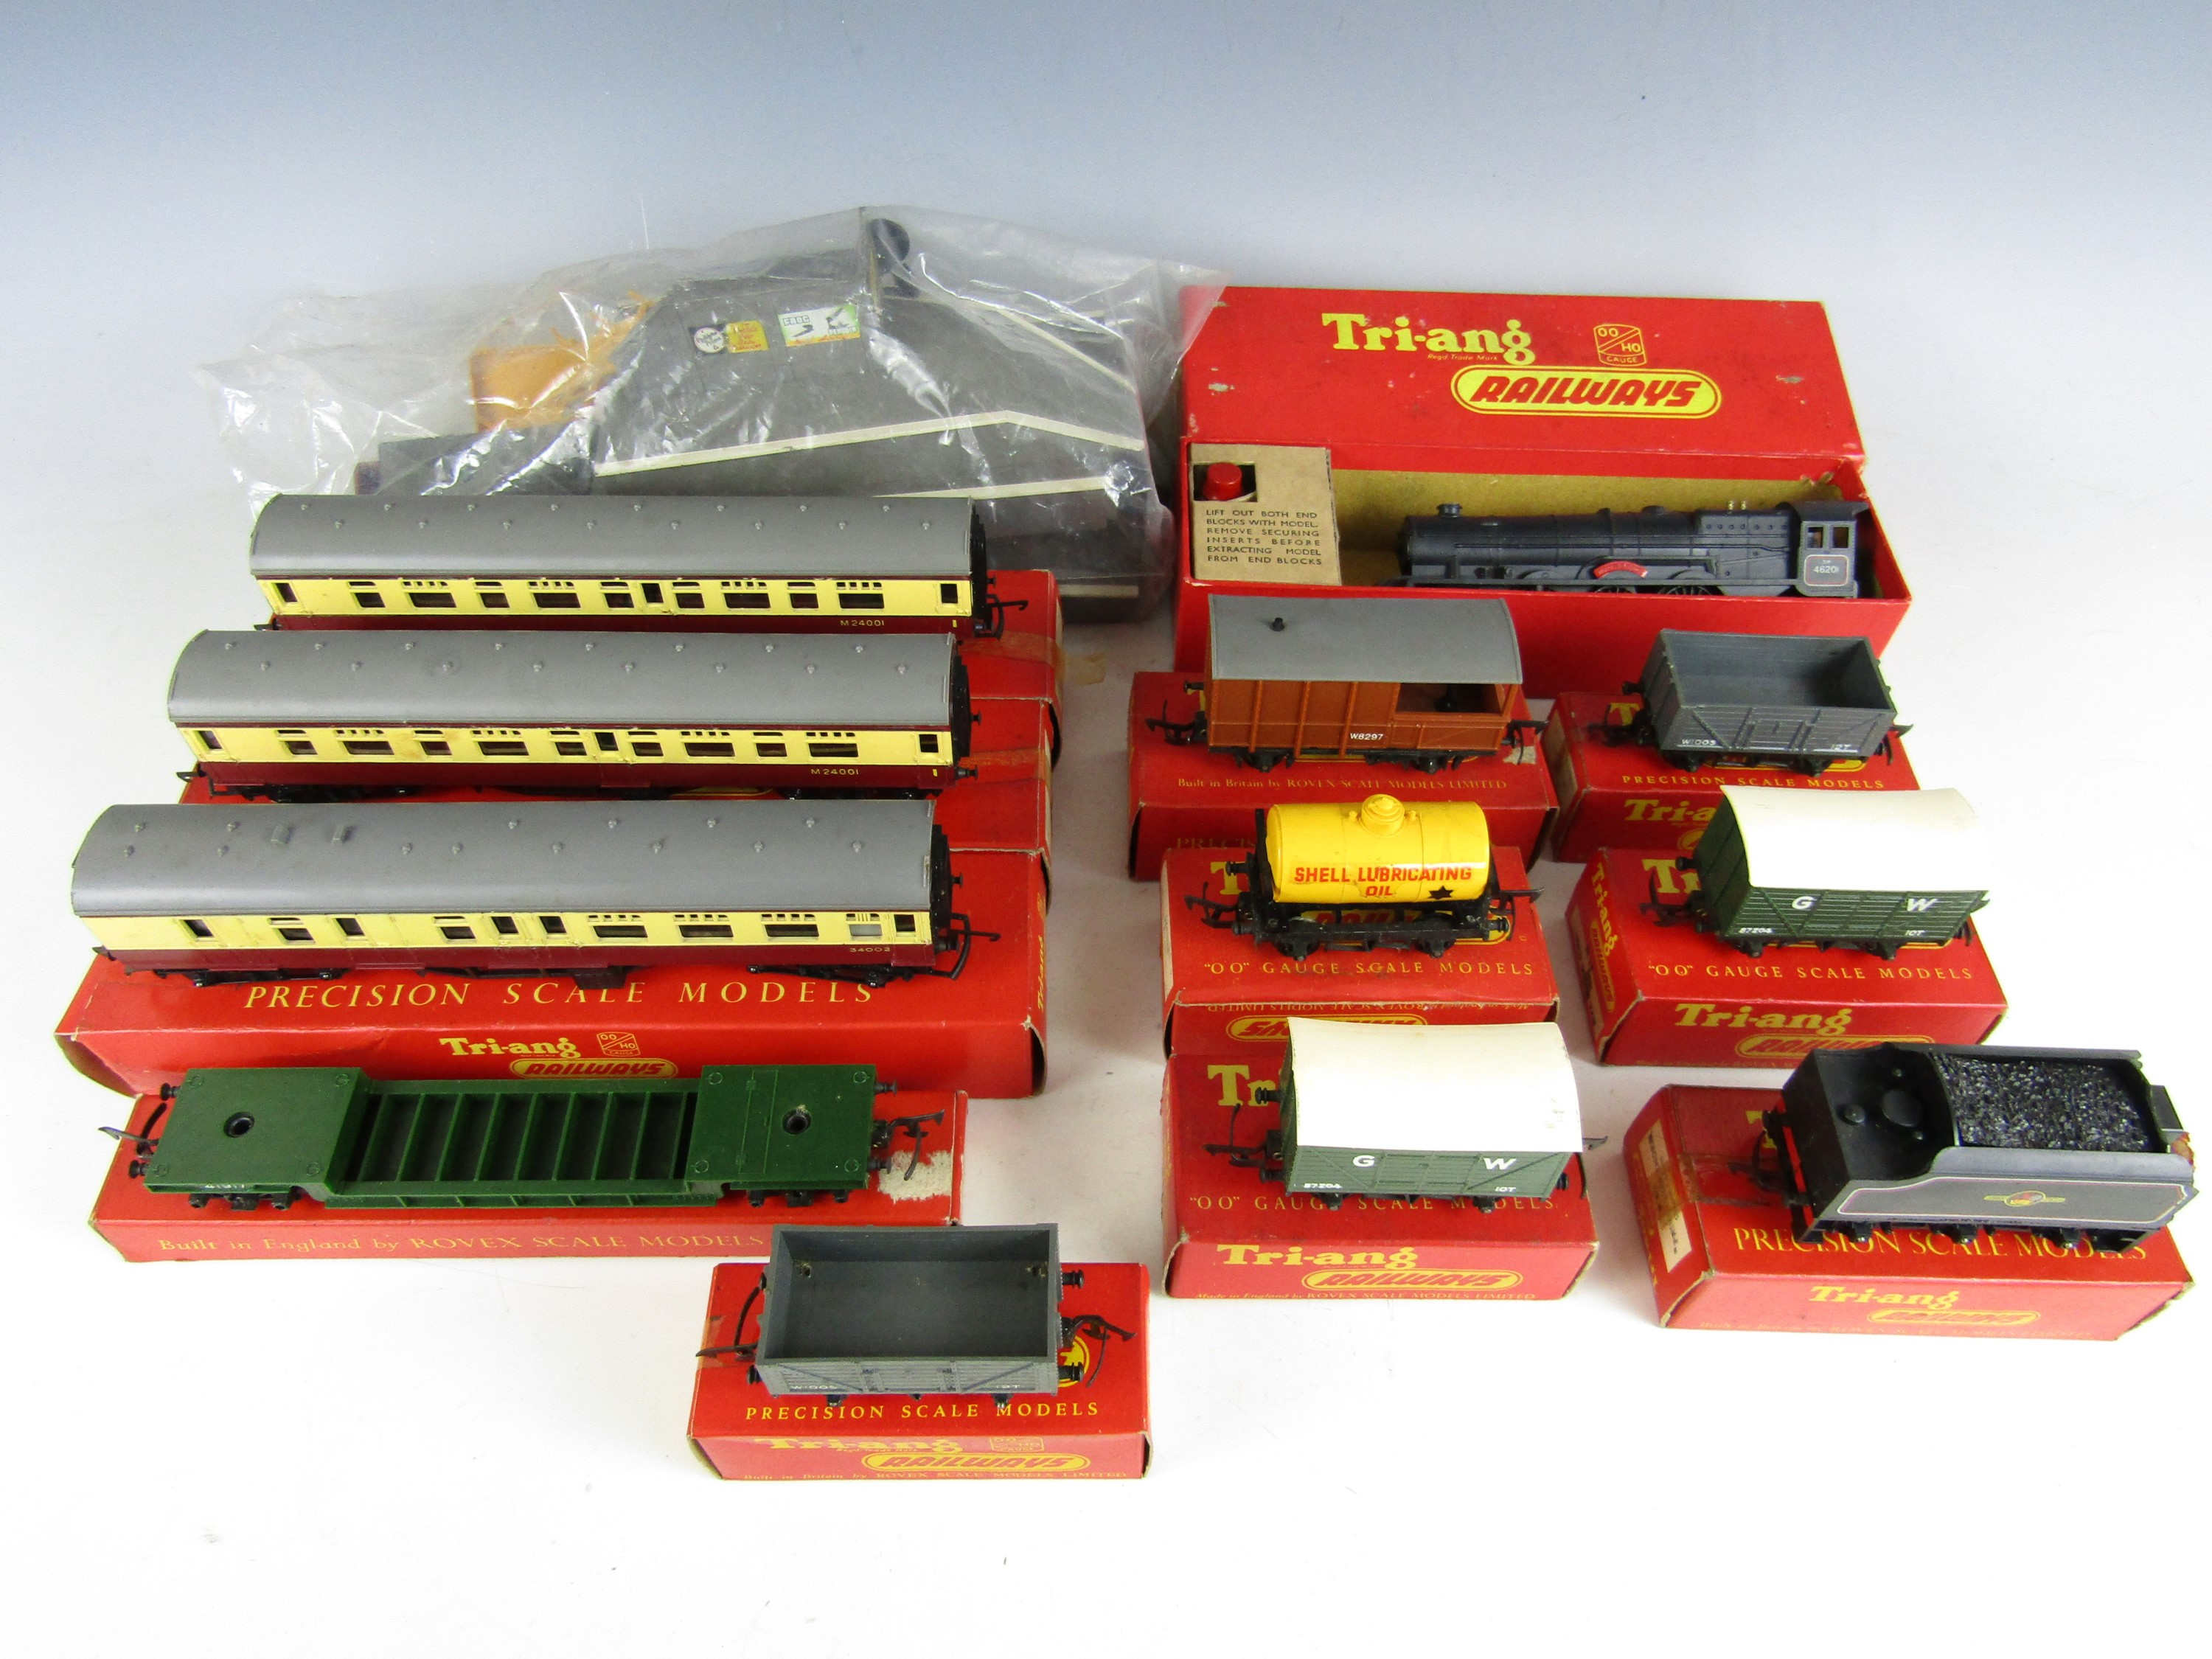 Lot 40 - [Model Railway] A quantity of boxed Tri-ang 00-gauge Precision Scale Models, including R50 4-6-2